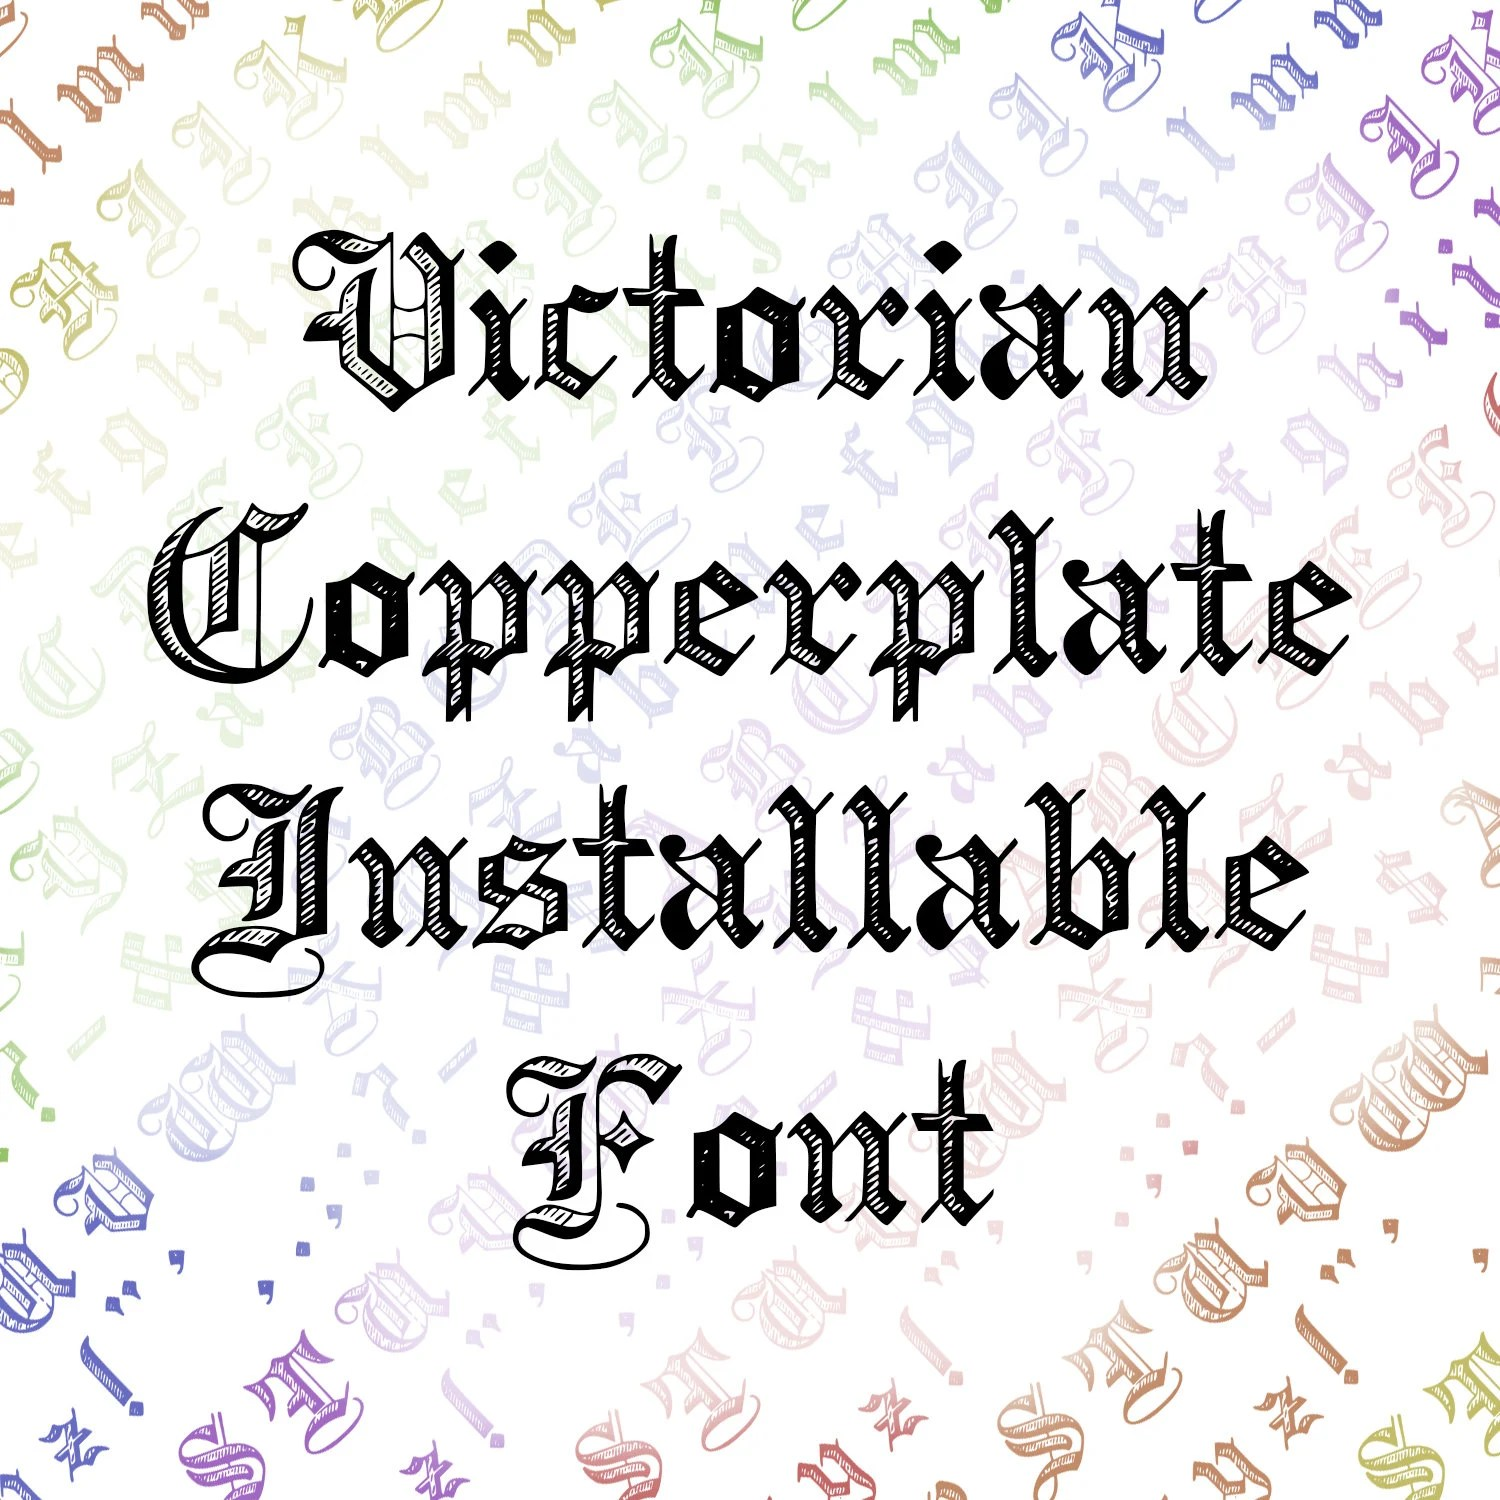 Calligraphy Fonts Victorian Victorian Copperplate Ornamental Penwork Installable Font Vintage Uppercase Lowercase Letters Numbers Punctuation Calligraphy Otf Ttf